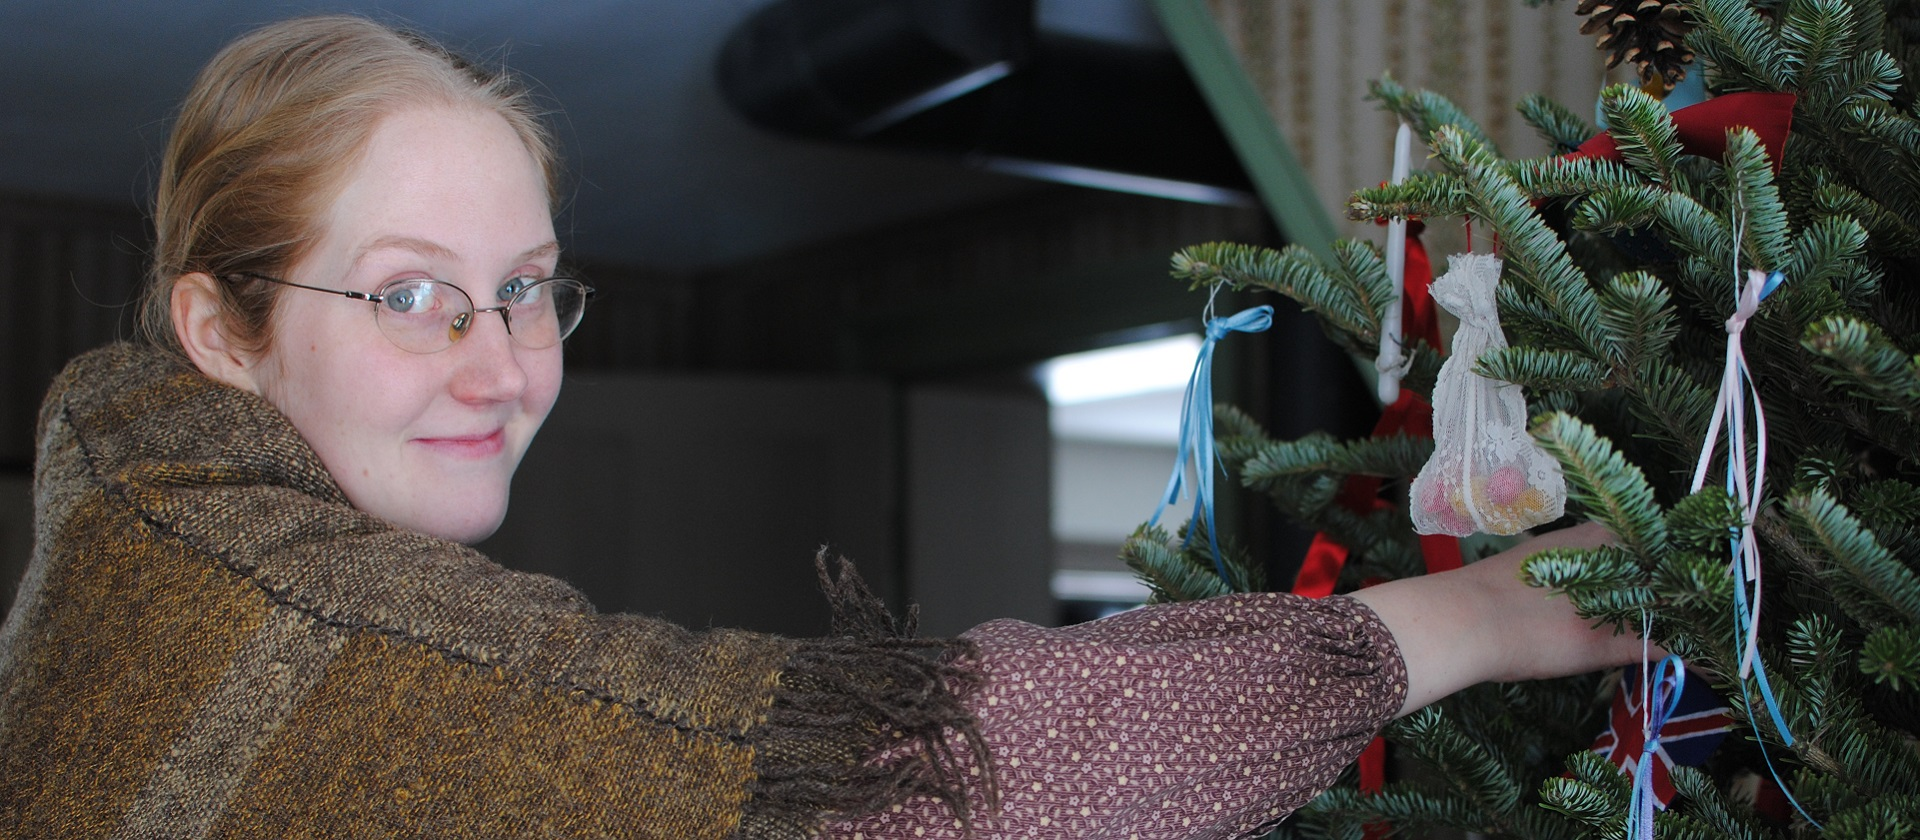 history actor at Black Creek Pioneer Village decorates Christmas Tree